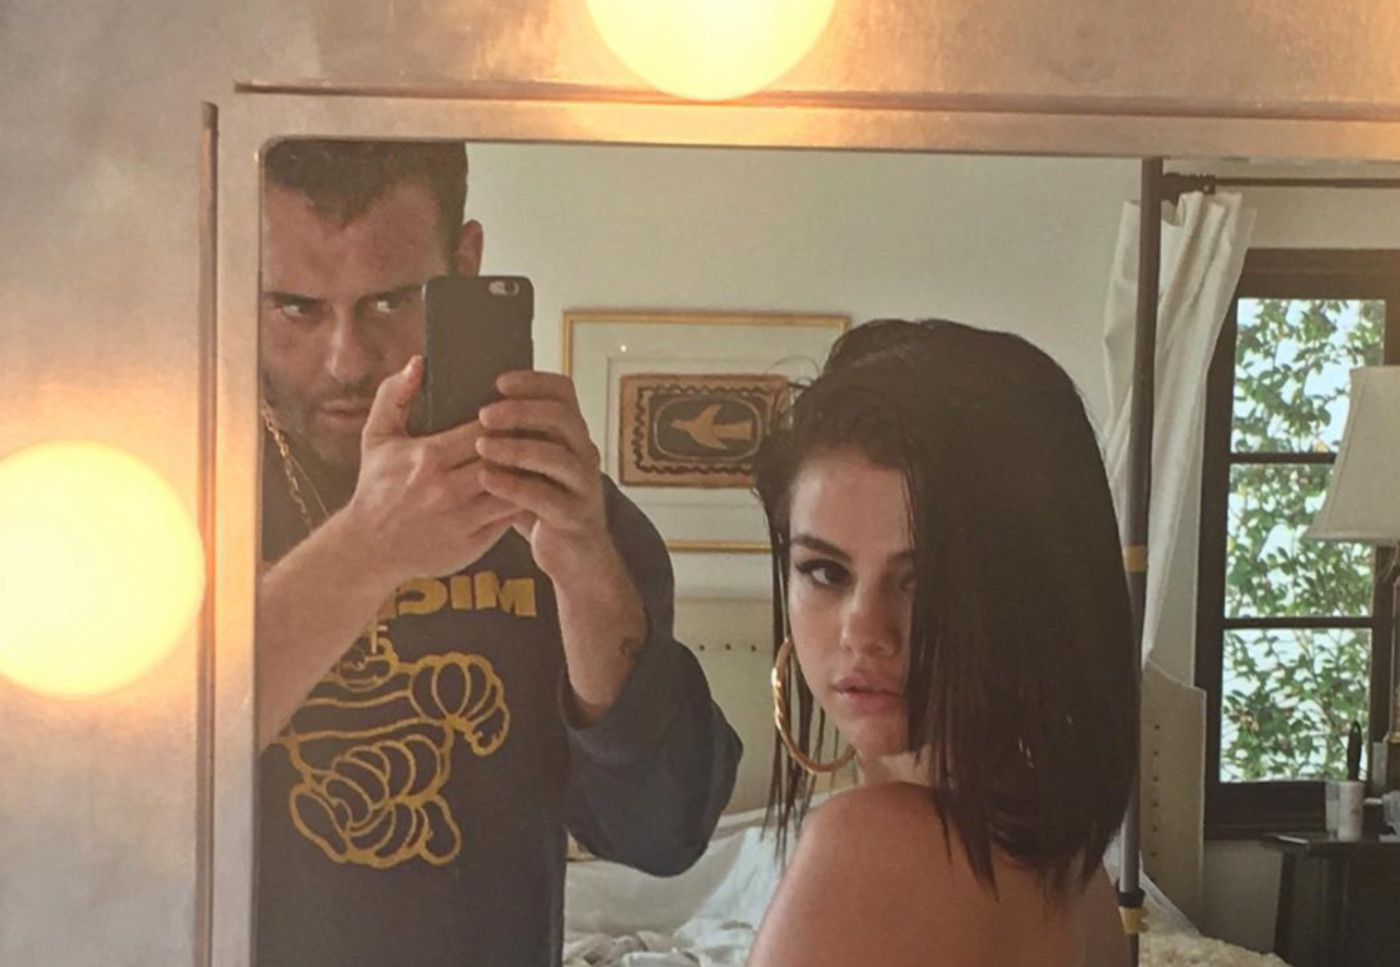 Selena Gomez Rocks A Thong On Instagram As Rumors Swirl Of Fake Relationship With The Weeknd Complex